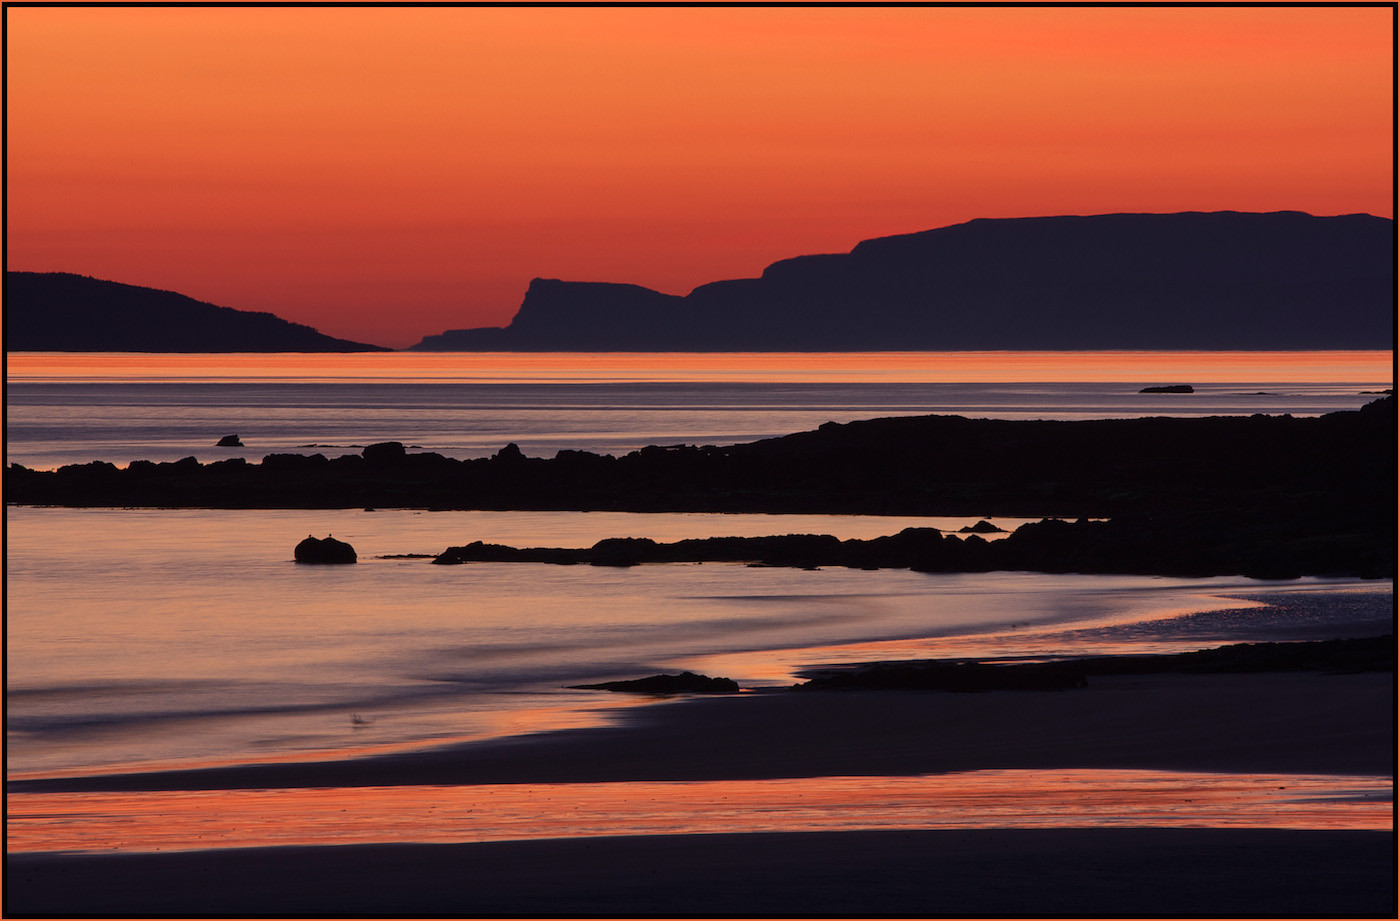 18 EIGG BEACH SUNSET by Carole Lewis